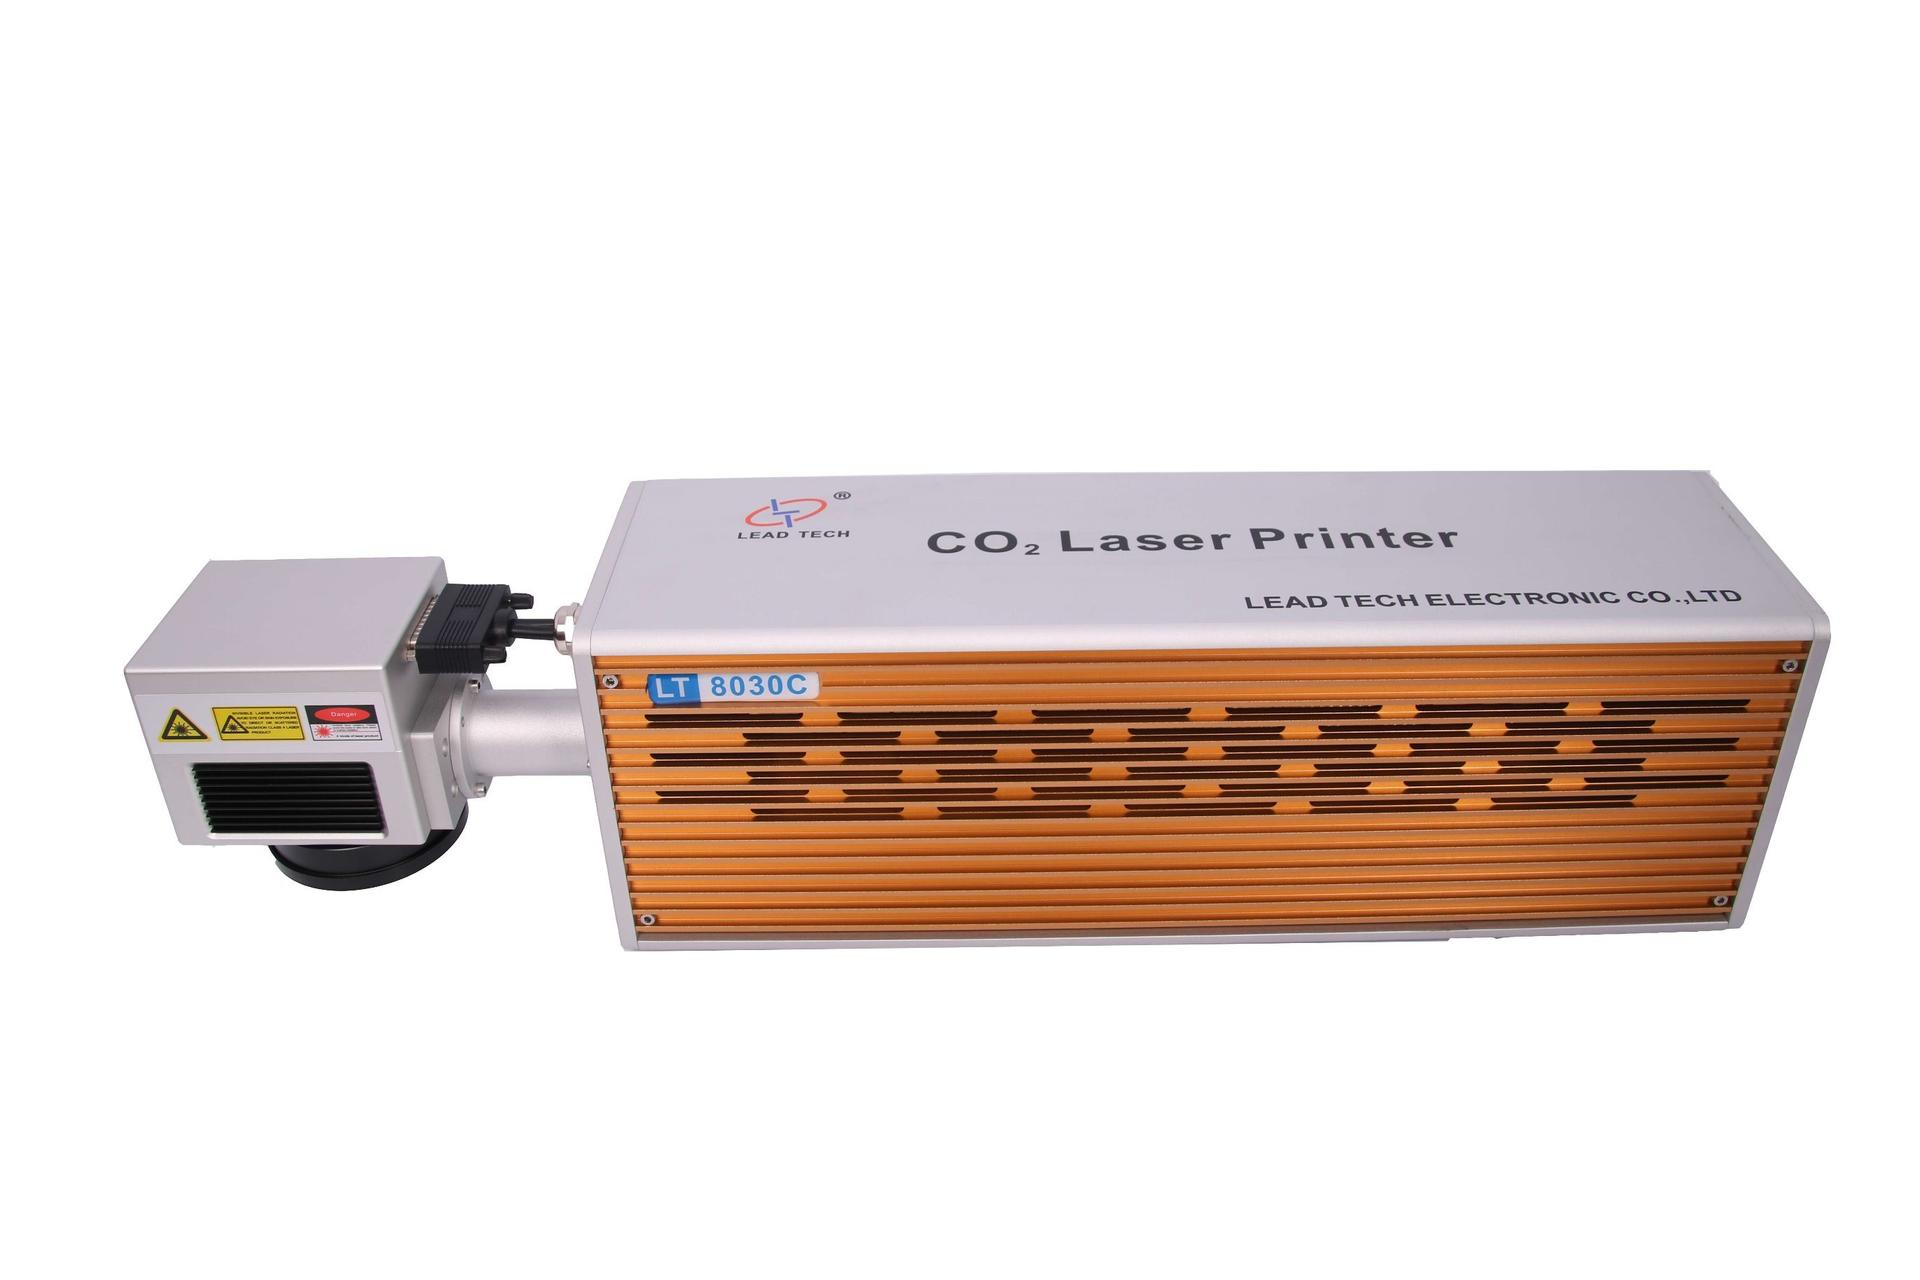 Lt8020c/Lt8030c CO2 20W/30W Easy to Operate Multifunction Laser Printer for Plastic Pipe Cable Aluminum